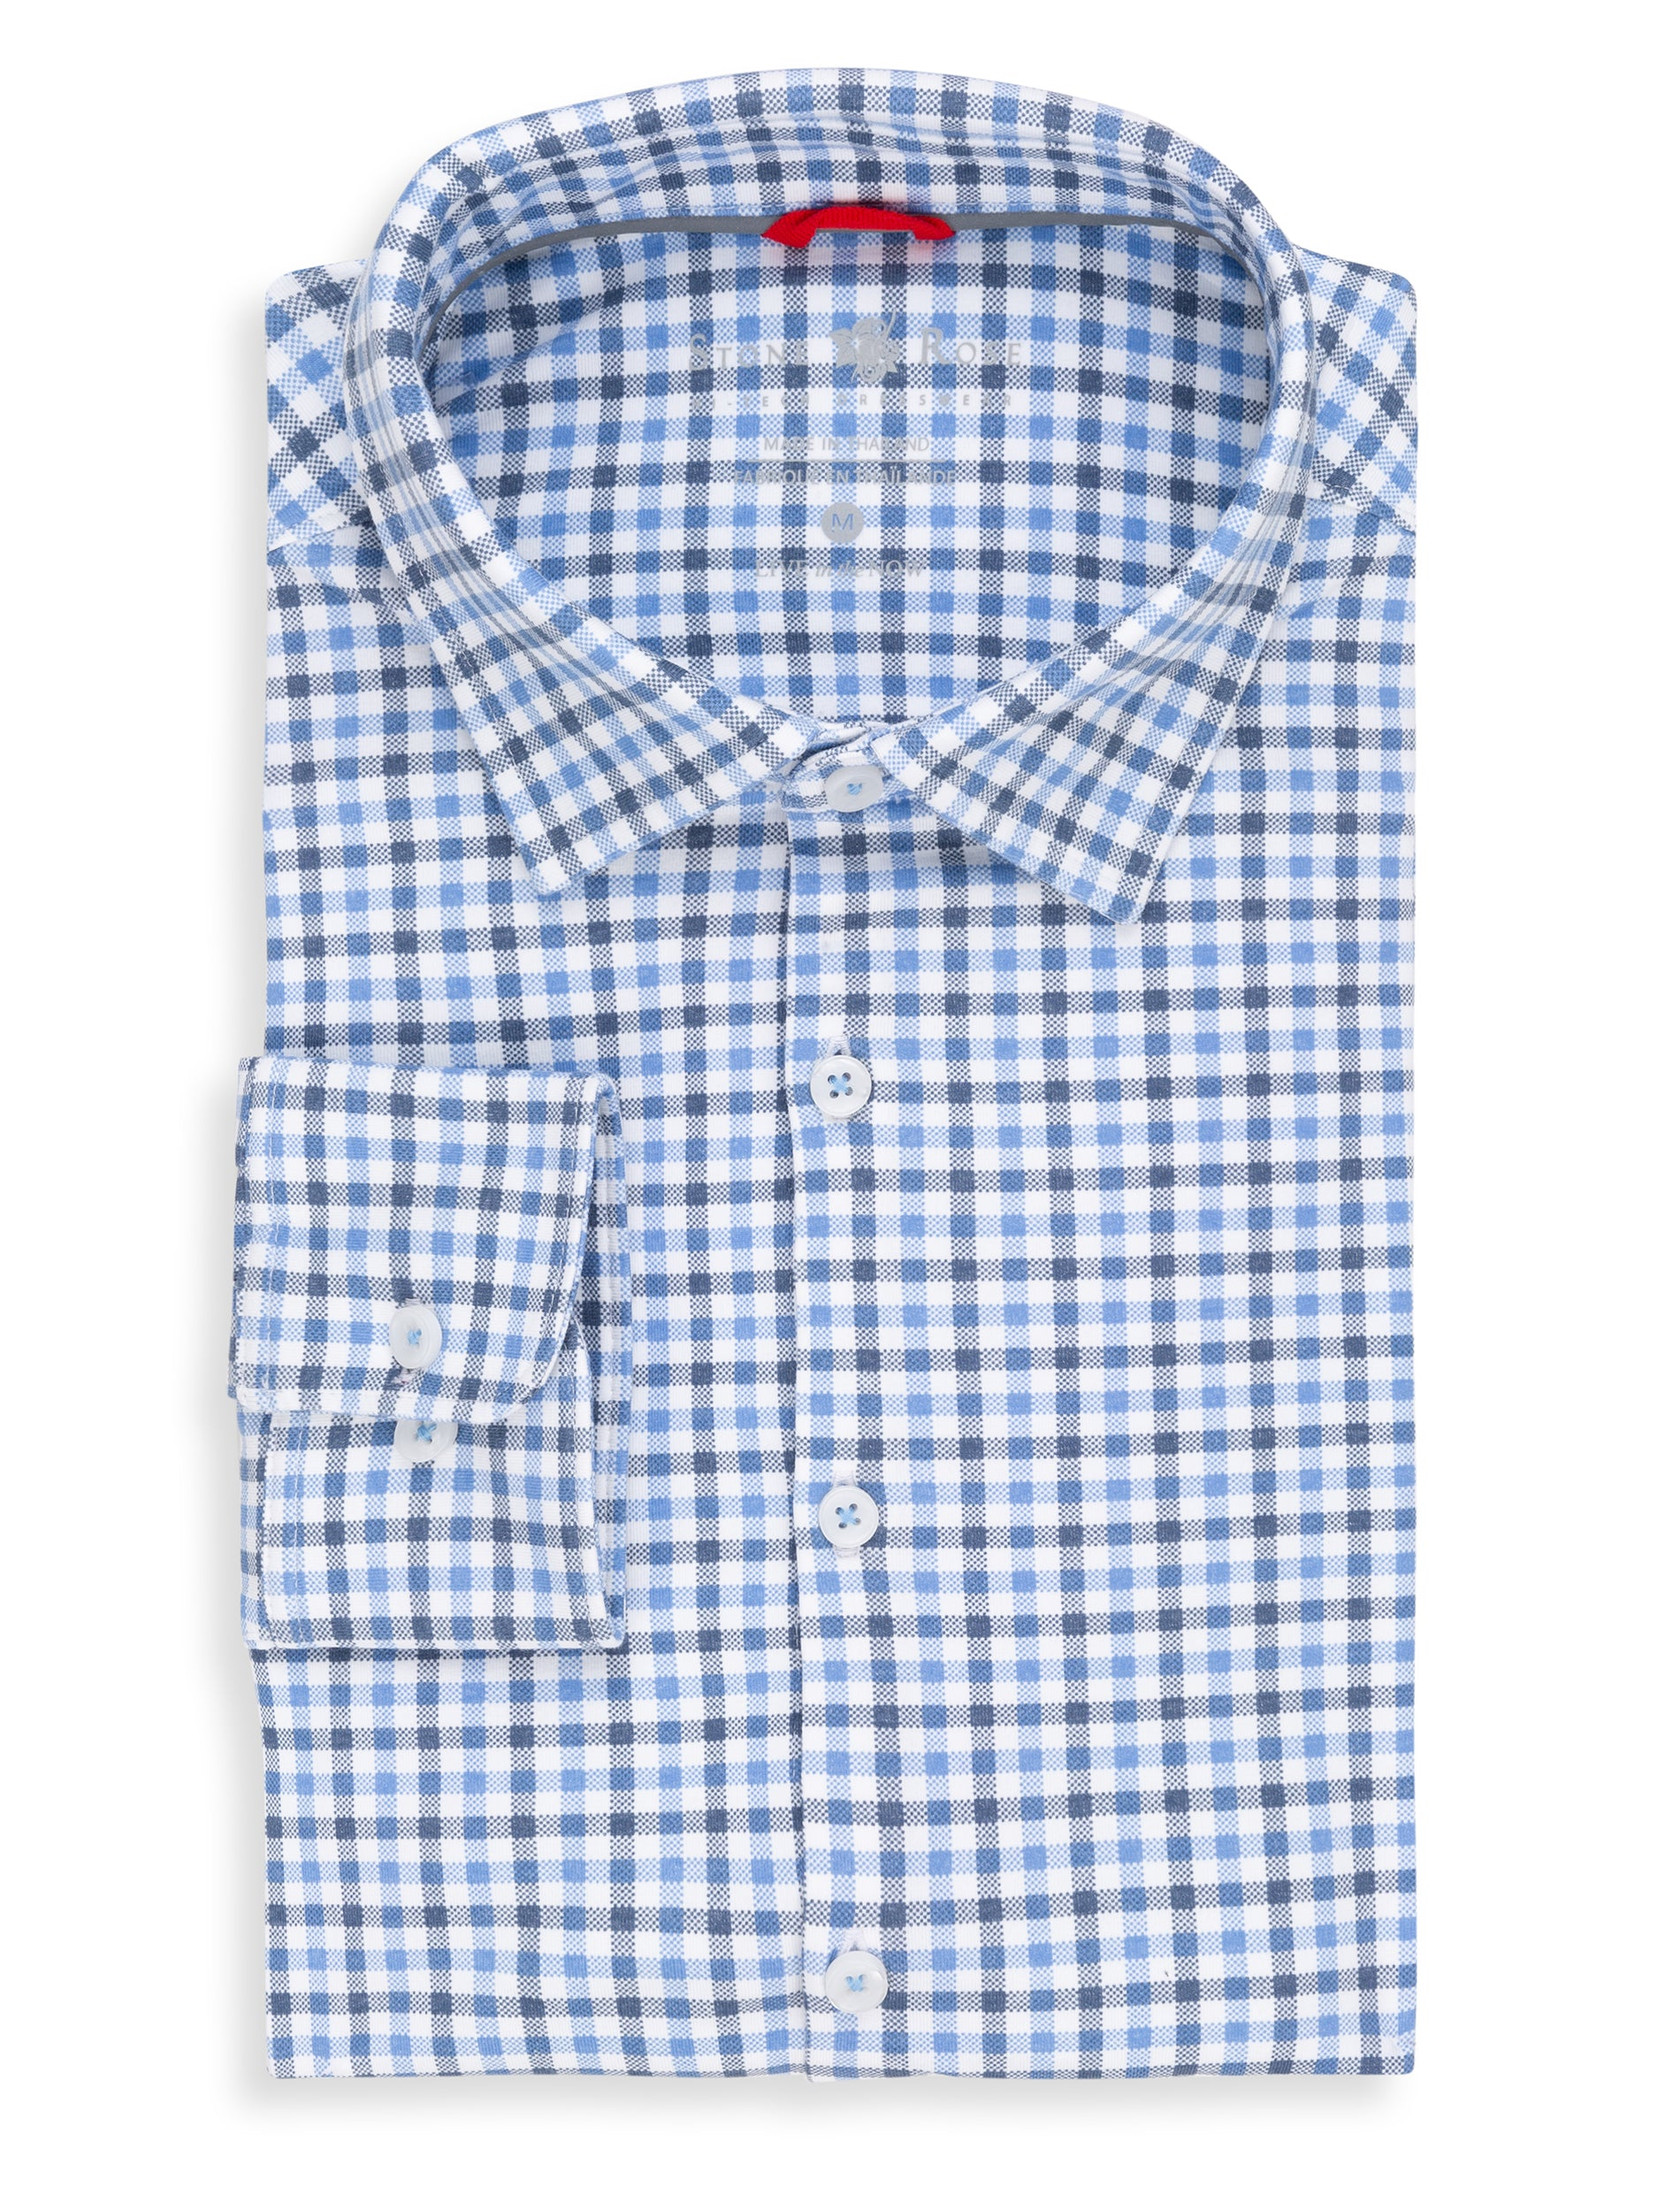 Blue Check Performance Knit Long Sleeve Shirt